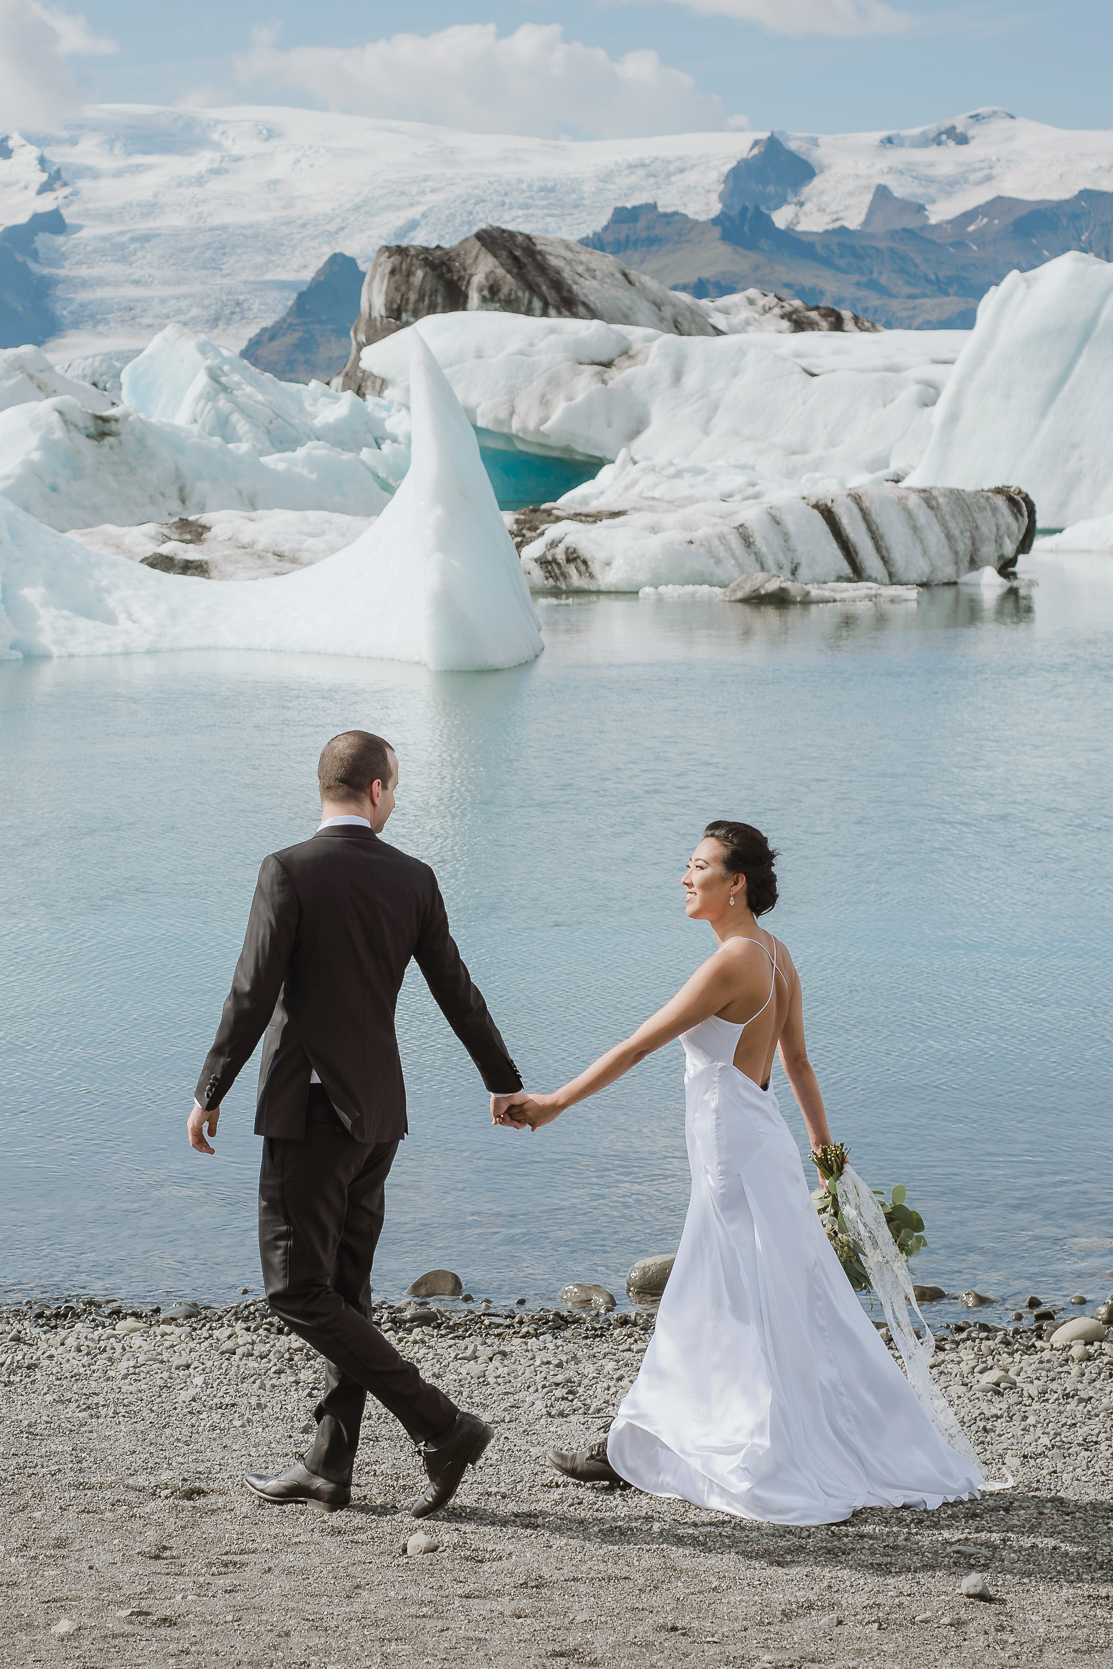 08-destination-wedding-iceland-engagement-session-vivianchen-053b.jpg